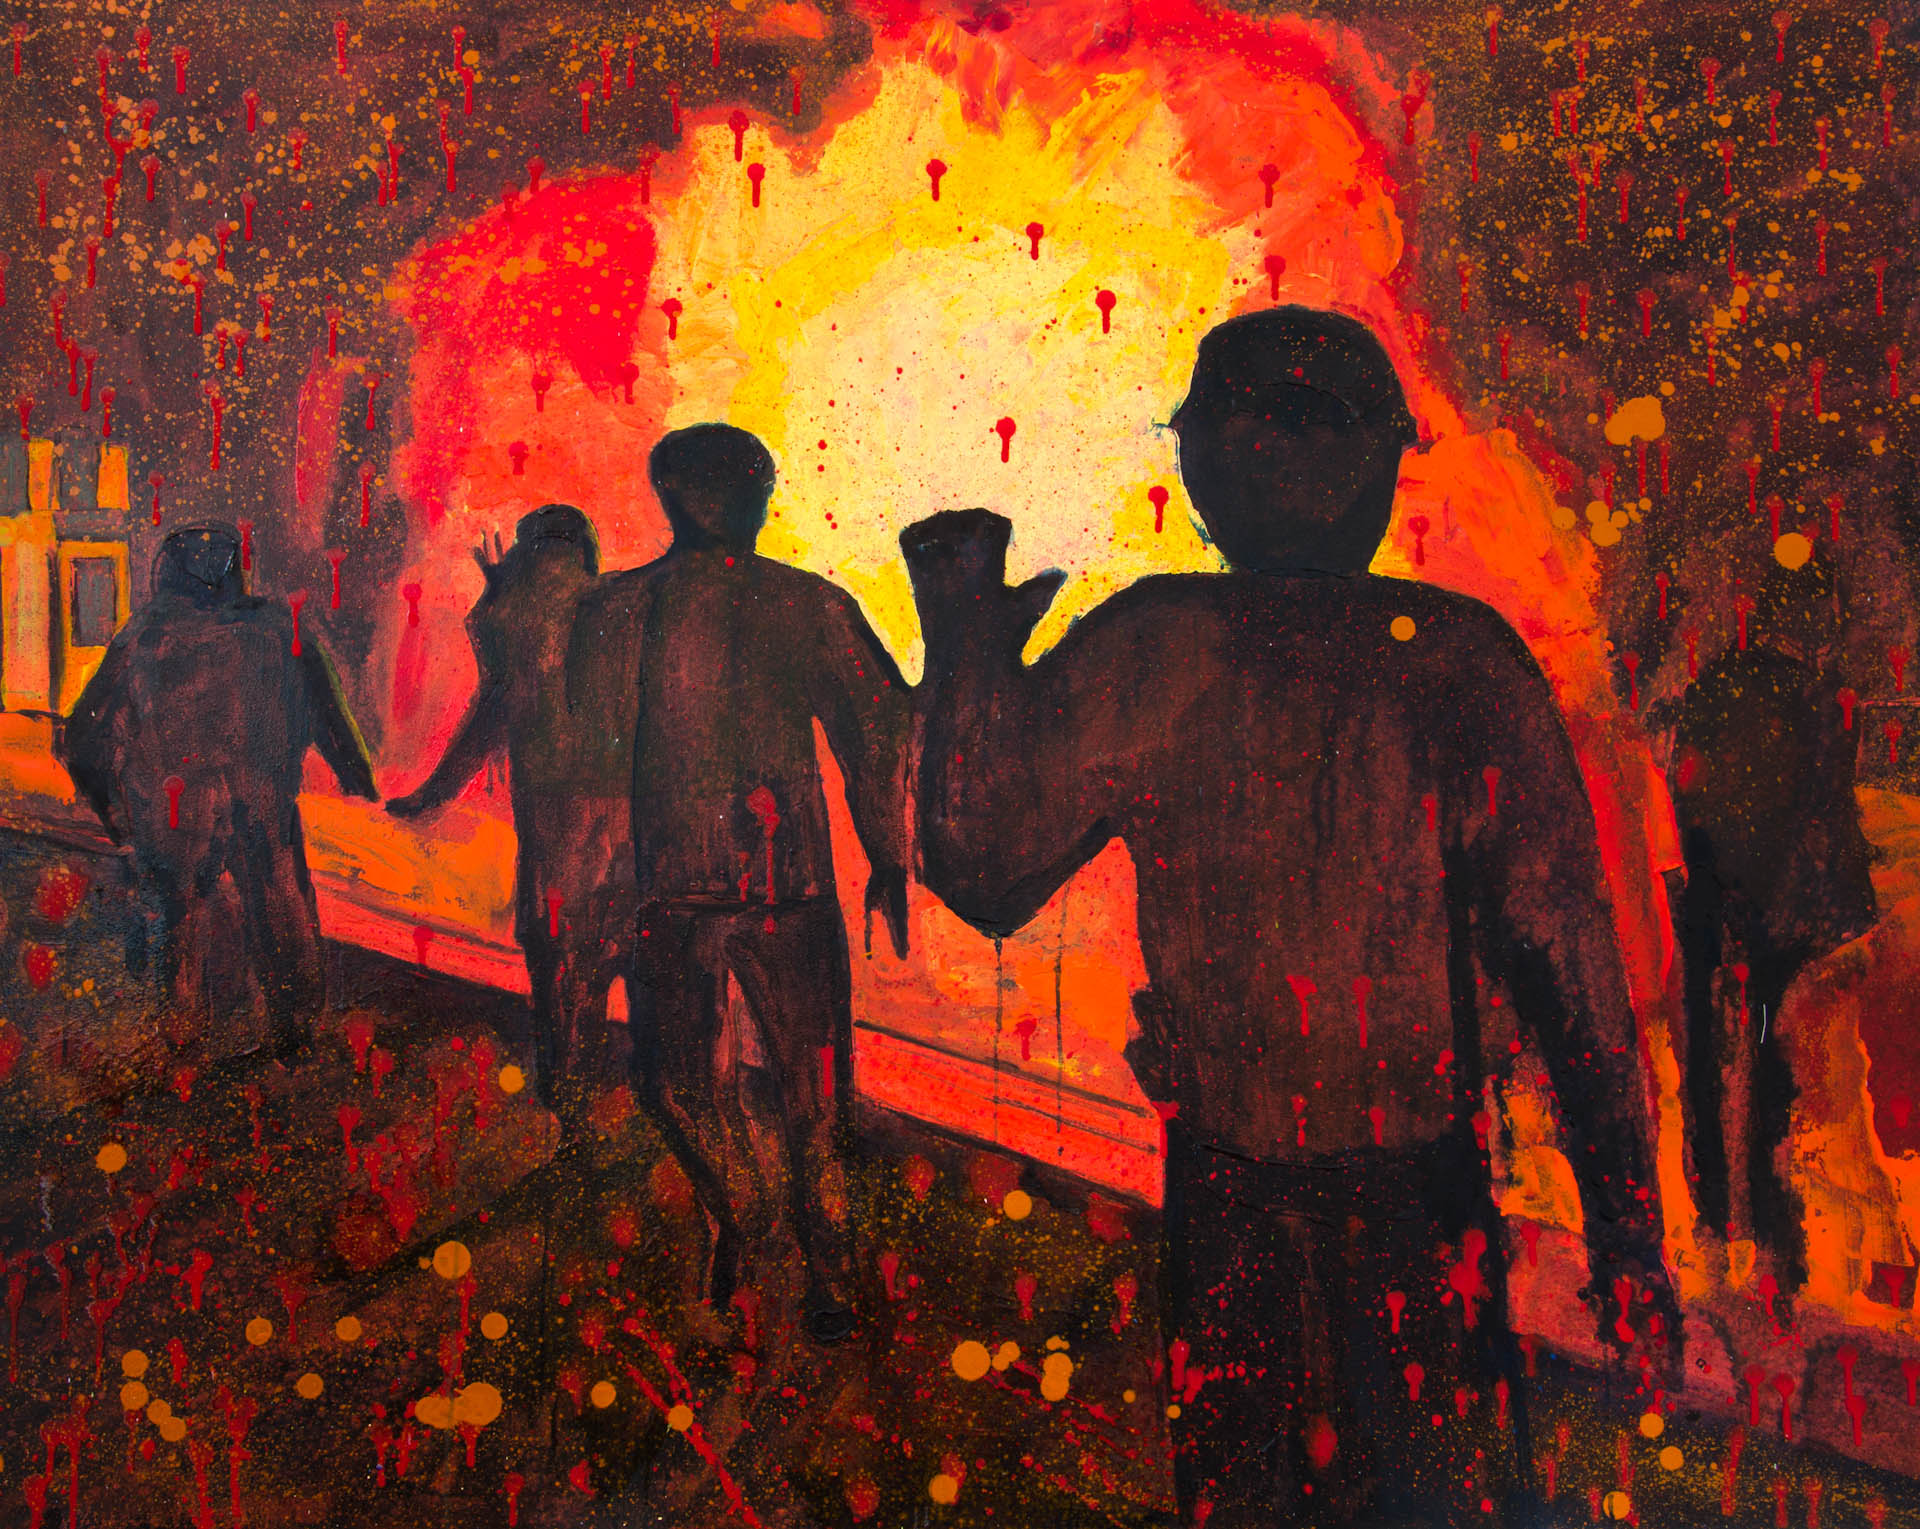 Stop_the_violence_oil_on_woodboard_95x120cm_2012.jpg